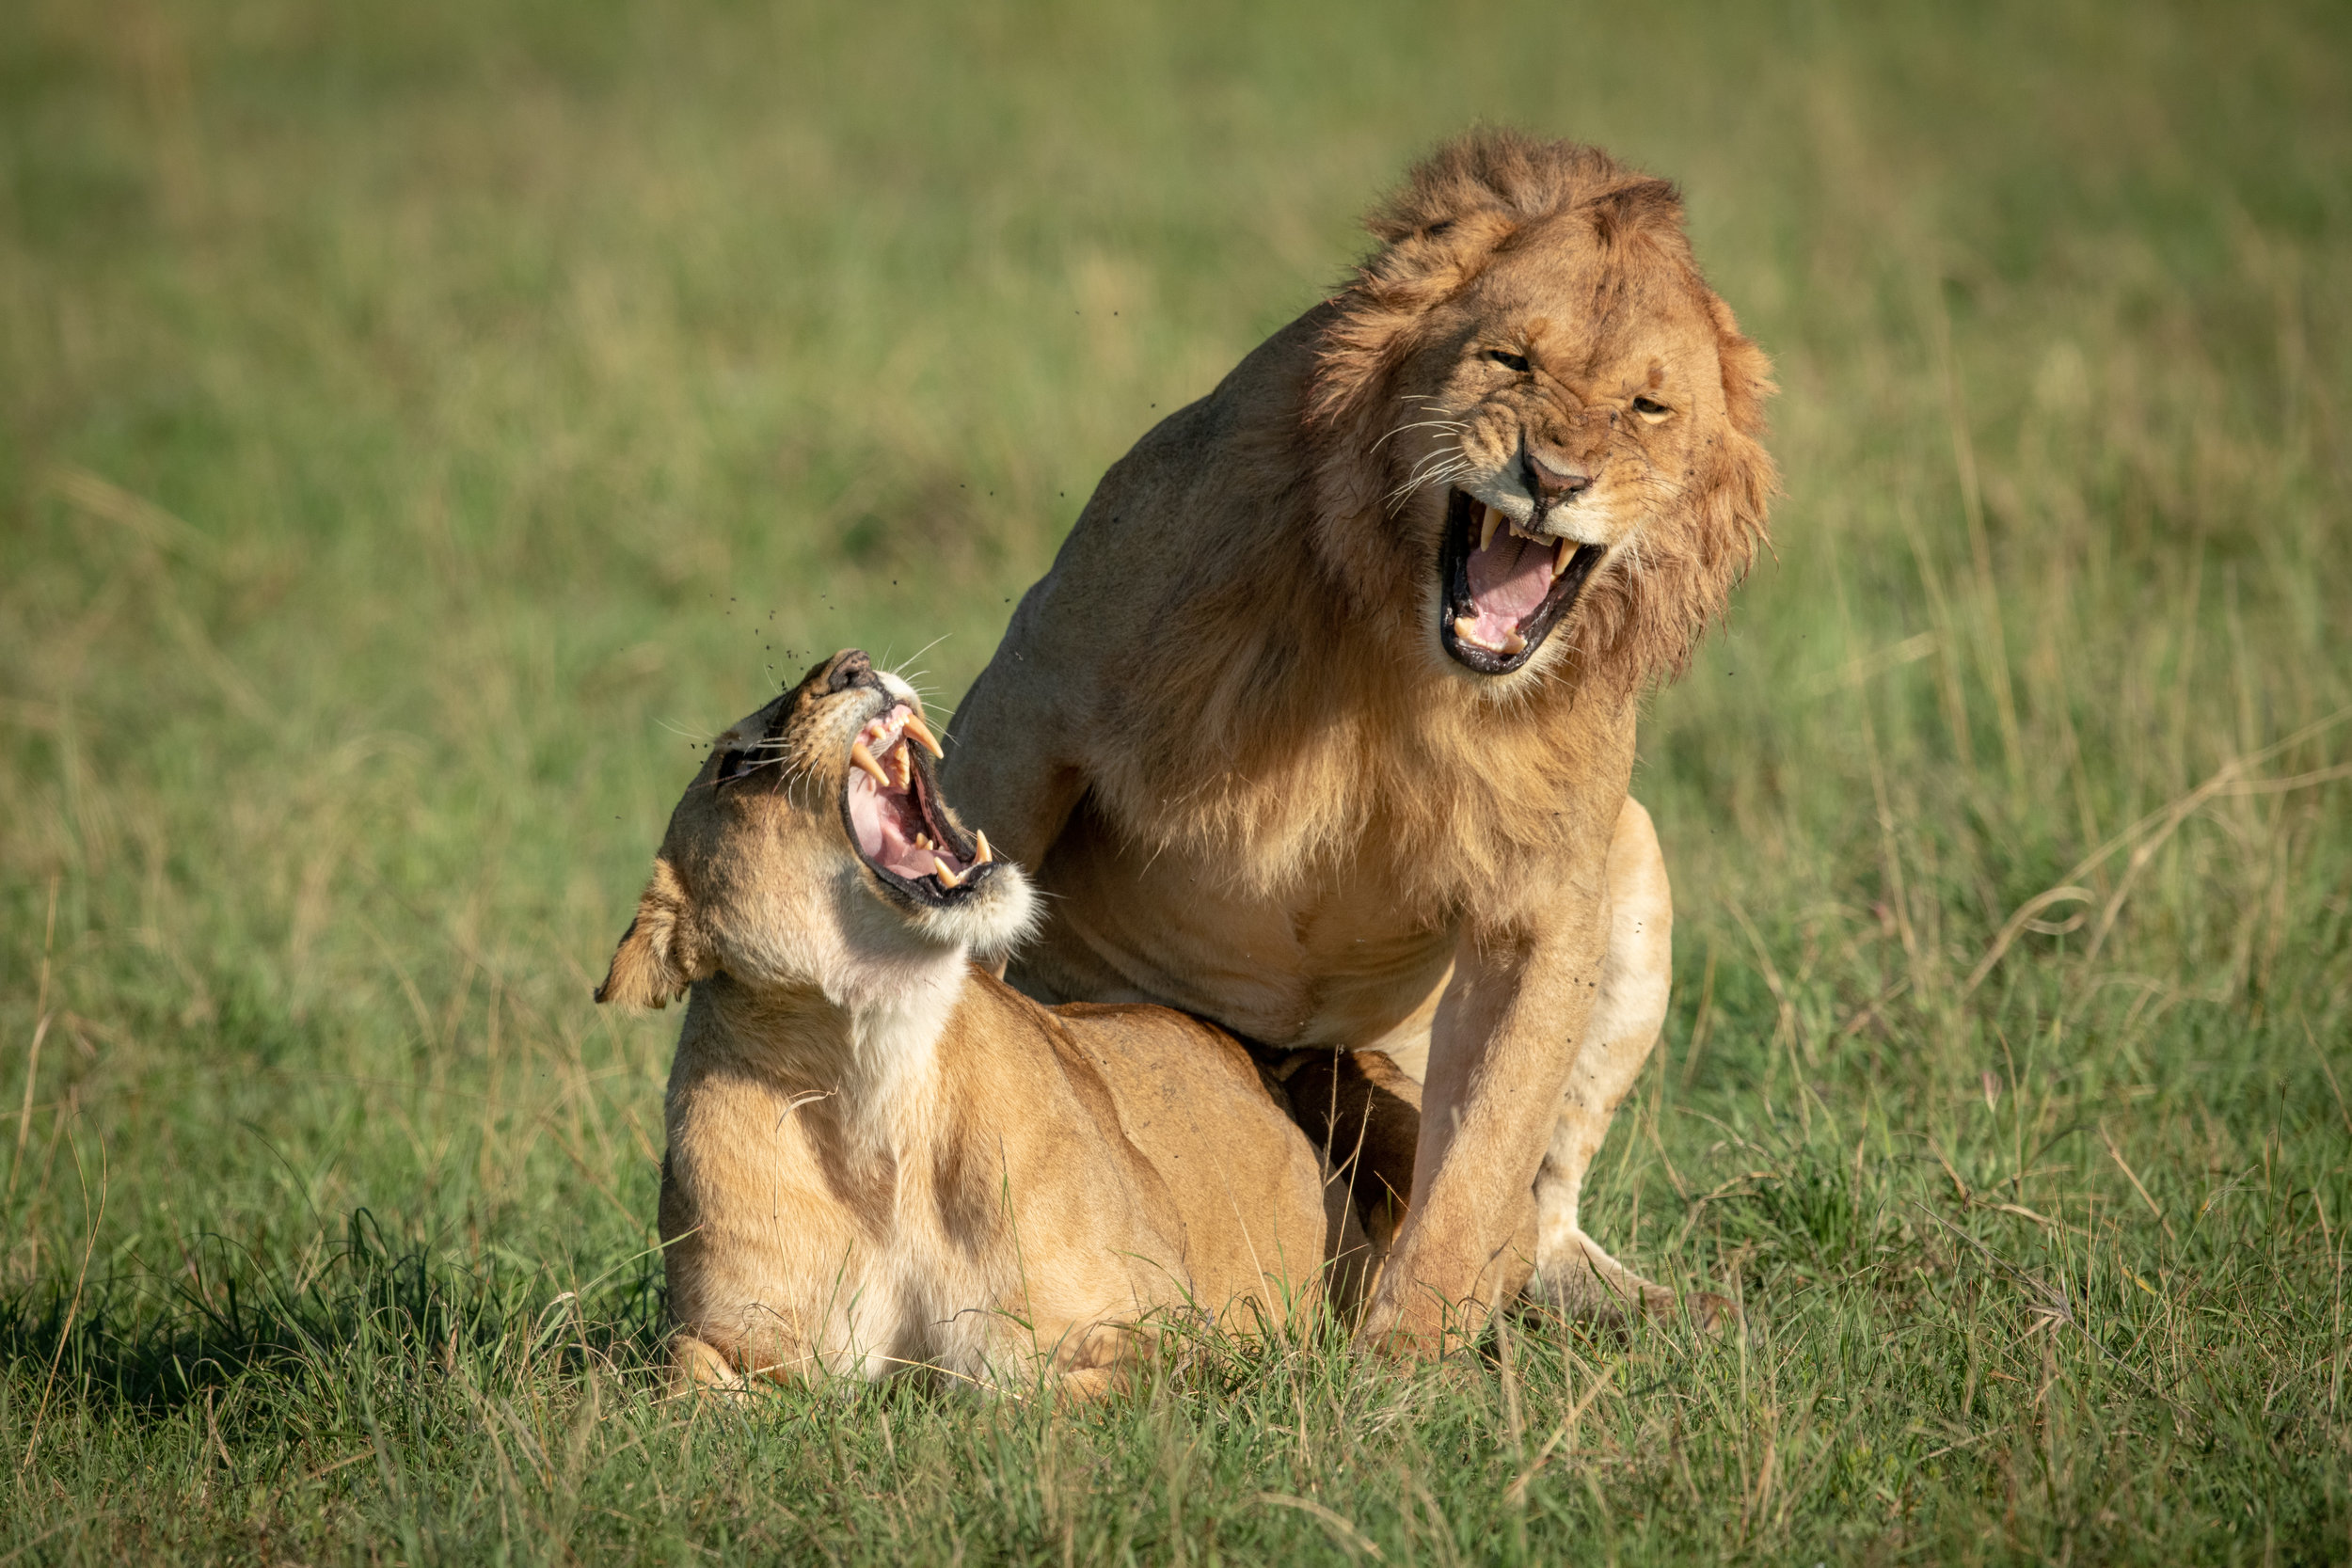 One can only imagine what these lions are shouting at each other…!